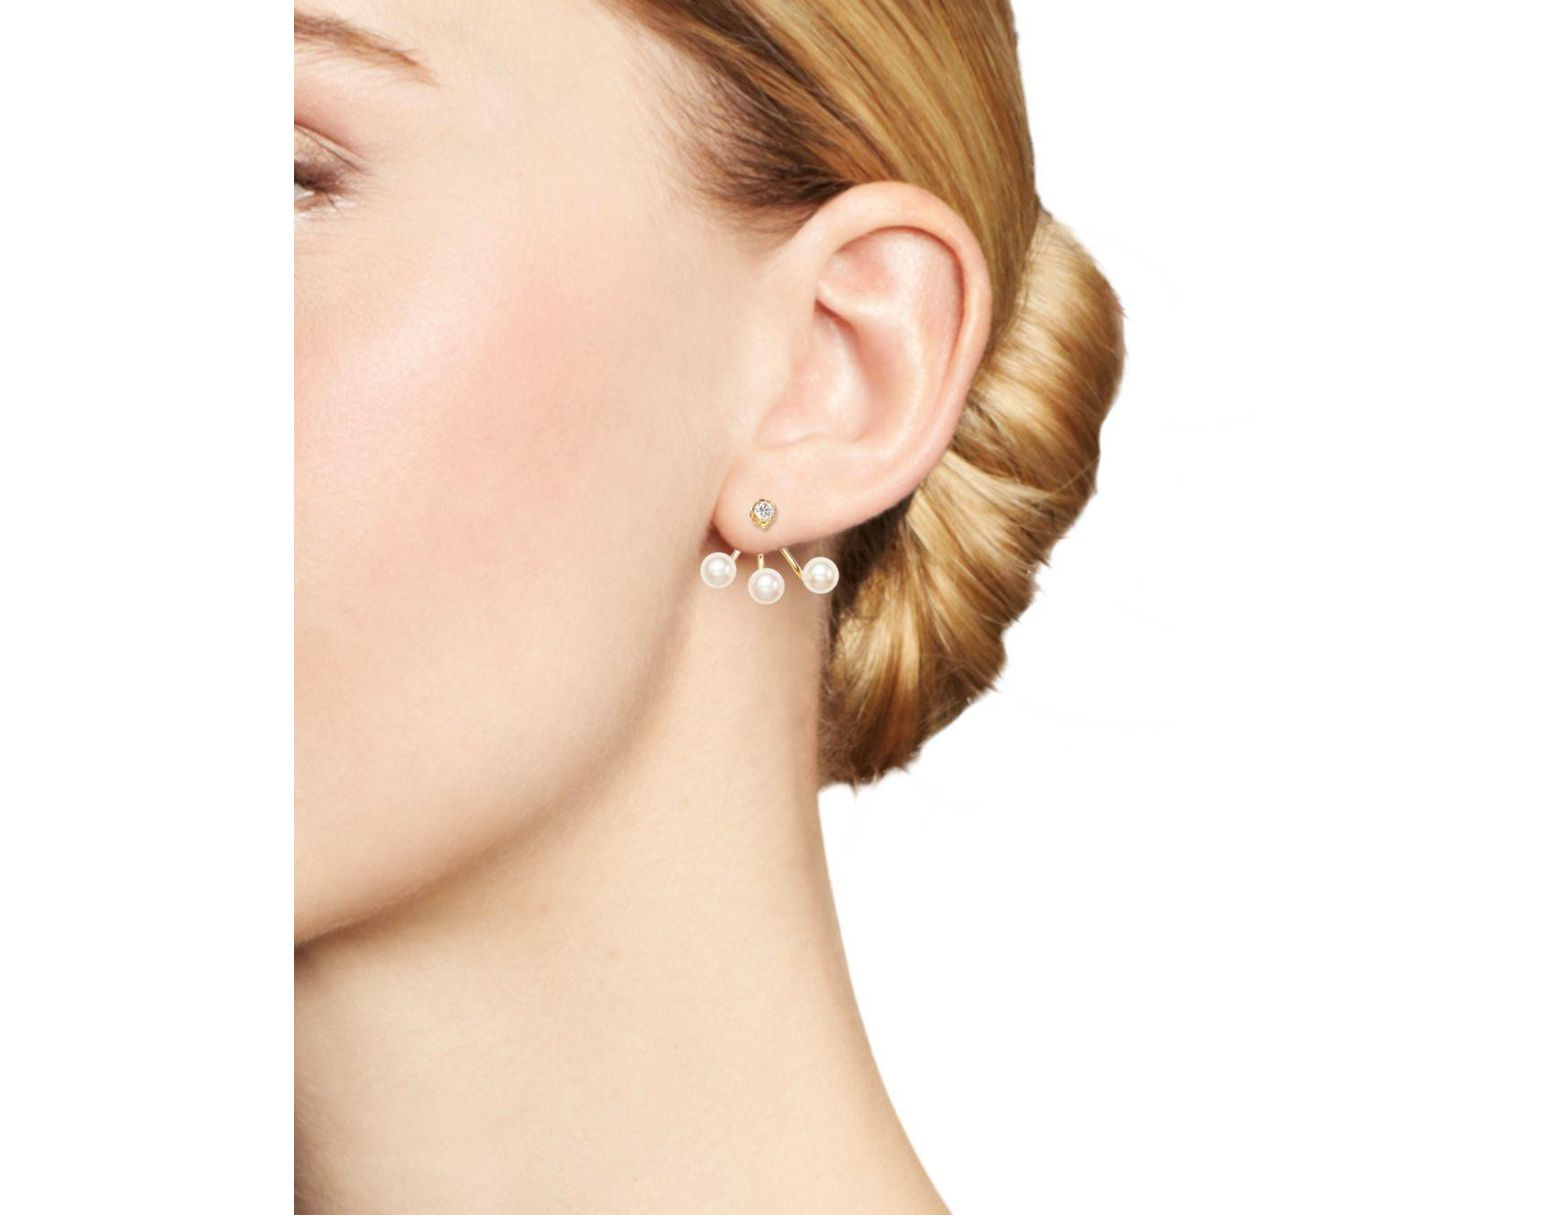 52189b4cf Zoe Chicco Diamond & 14k Yellow Gold Single Ear Cuff in Metallic - Save 17%  - Lyst